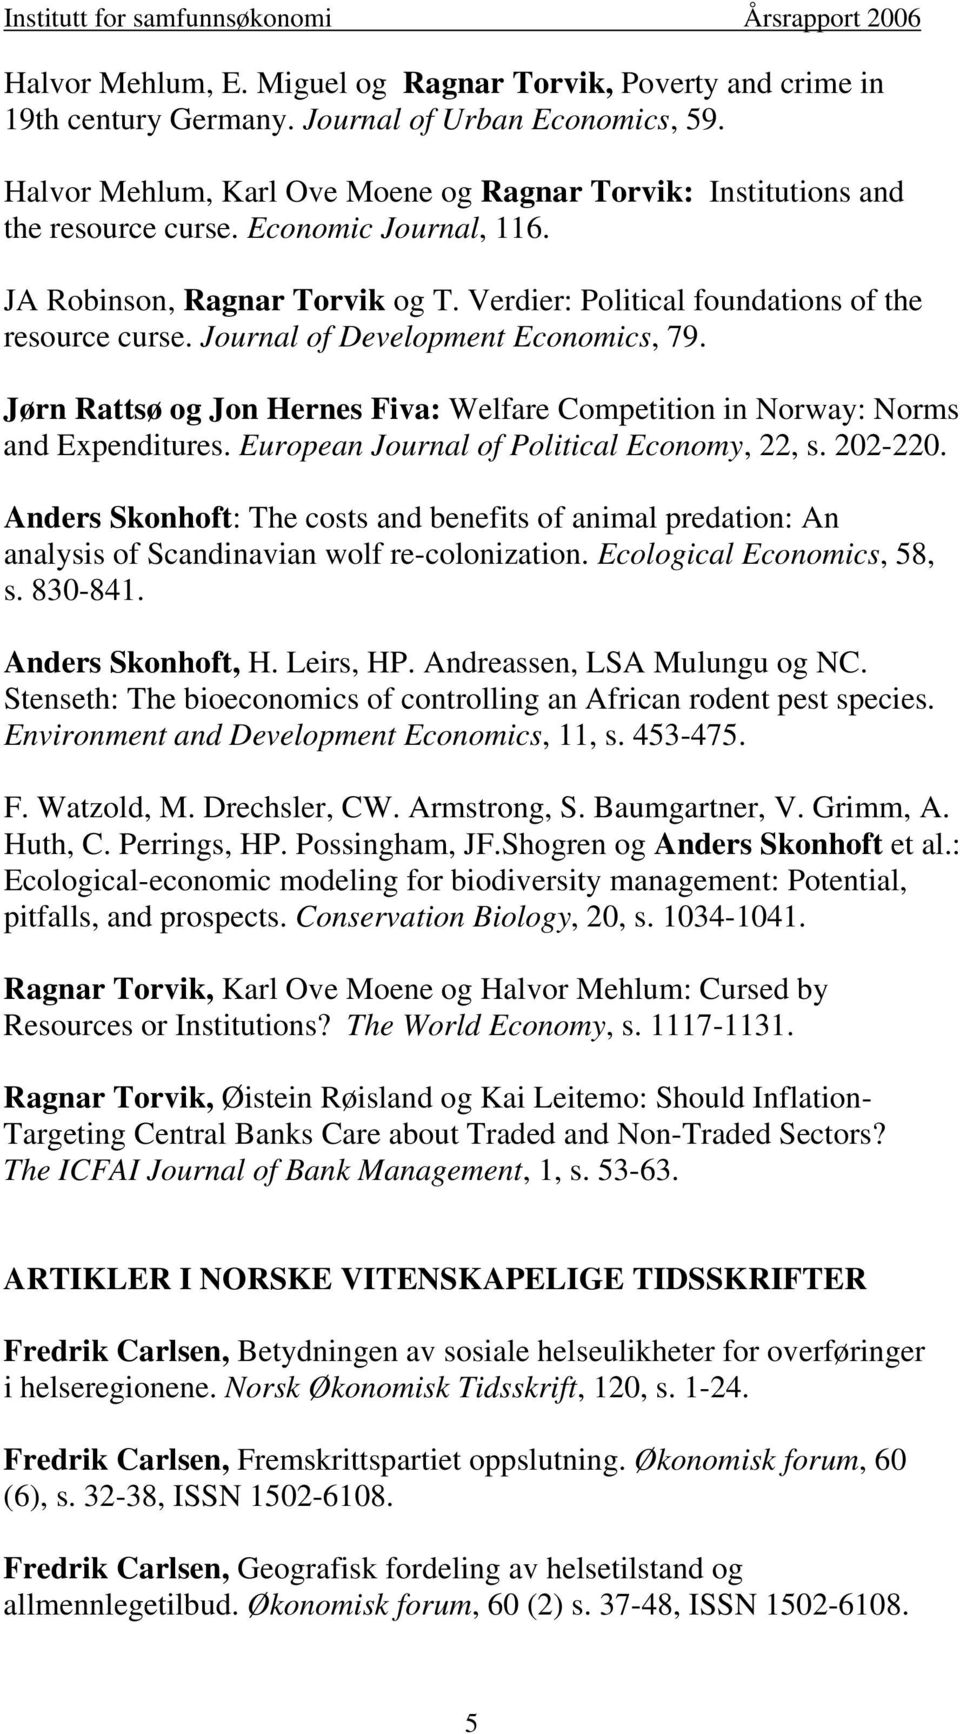 Journal of Development Economics, 79. Jørn Rattsø og Jon Hernes Fiva: Welfare Competition in Norway: Norms and Expenditures. European Journal of Political Economy, 22, s. 202-220.